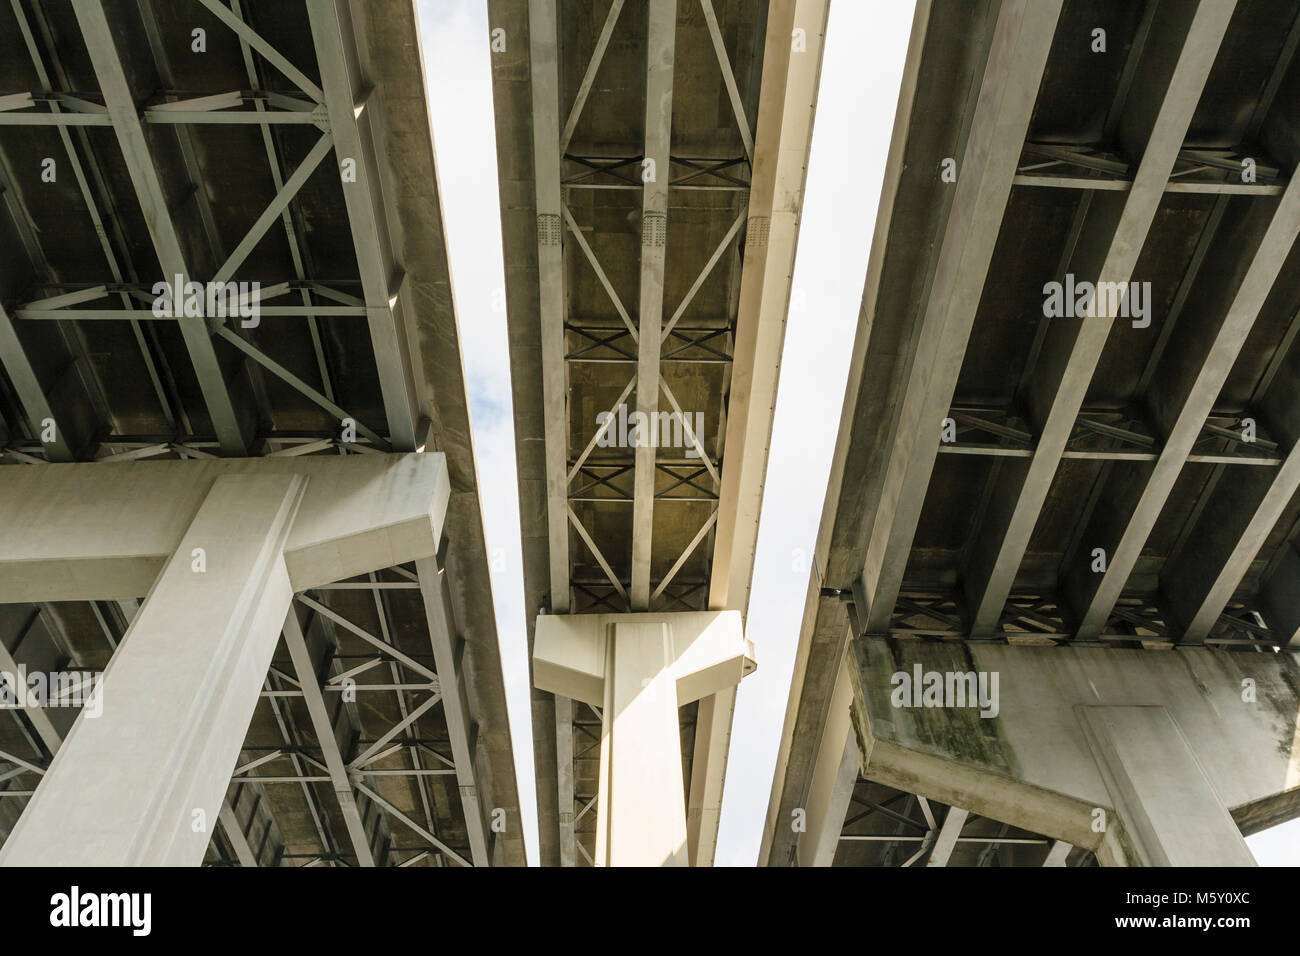 Three overpasses / flyovers / road bridges in downtown New Orleans, Louisiana. - Stock Image